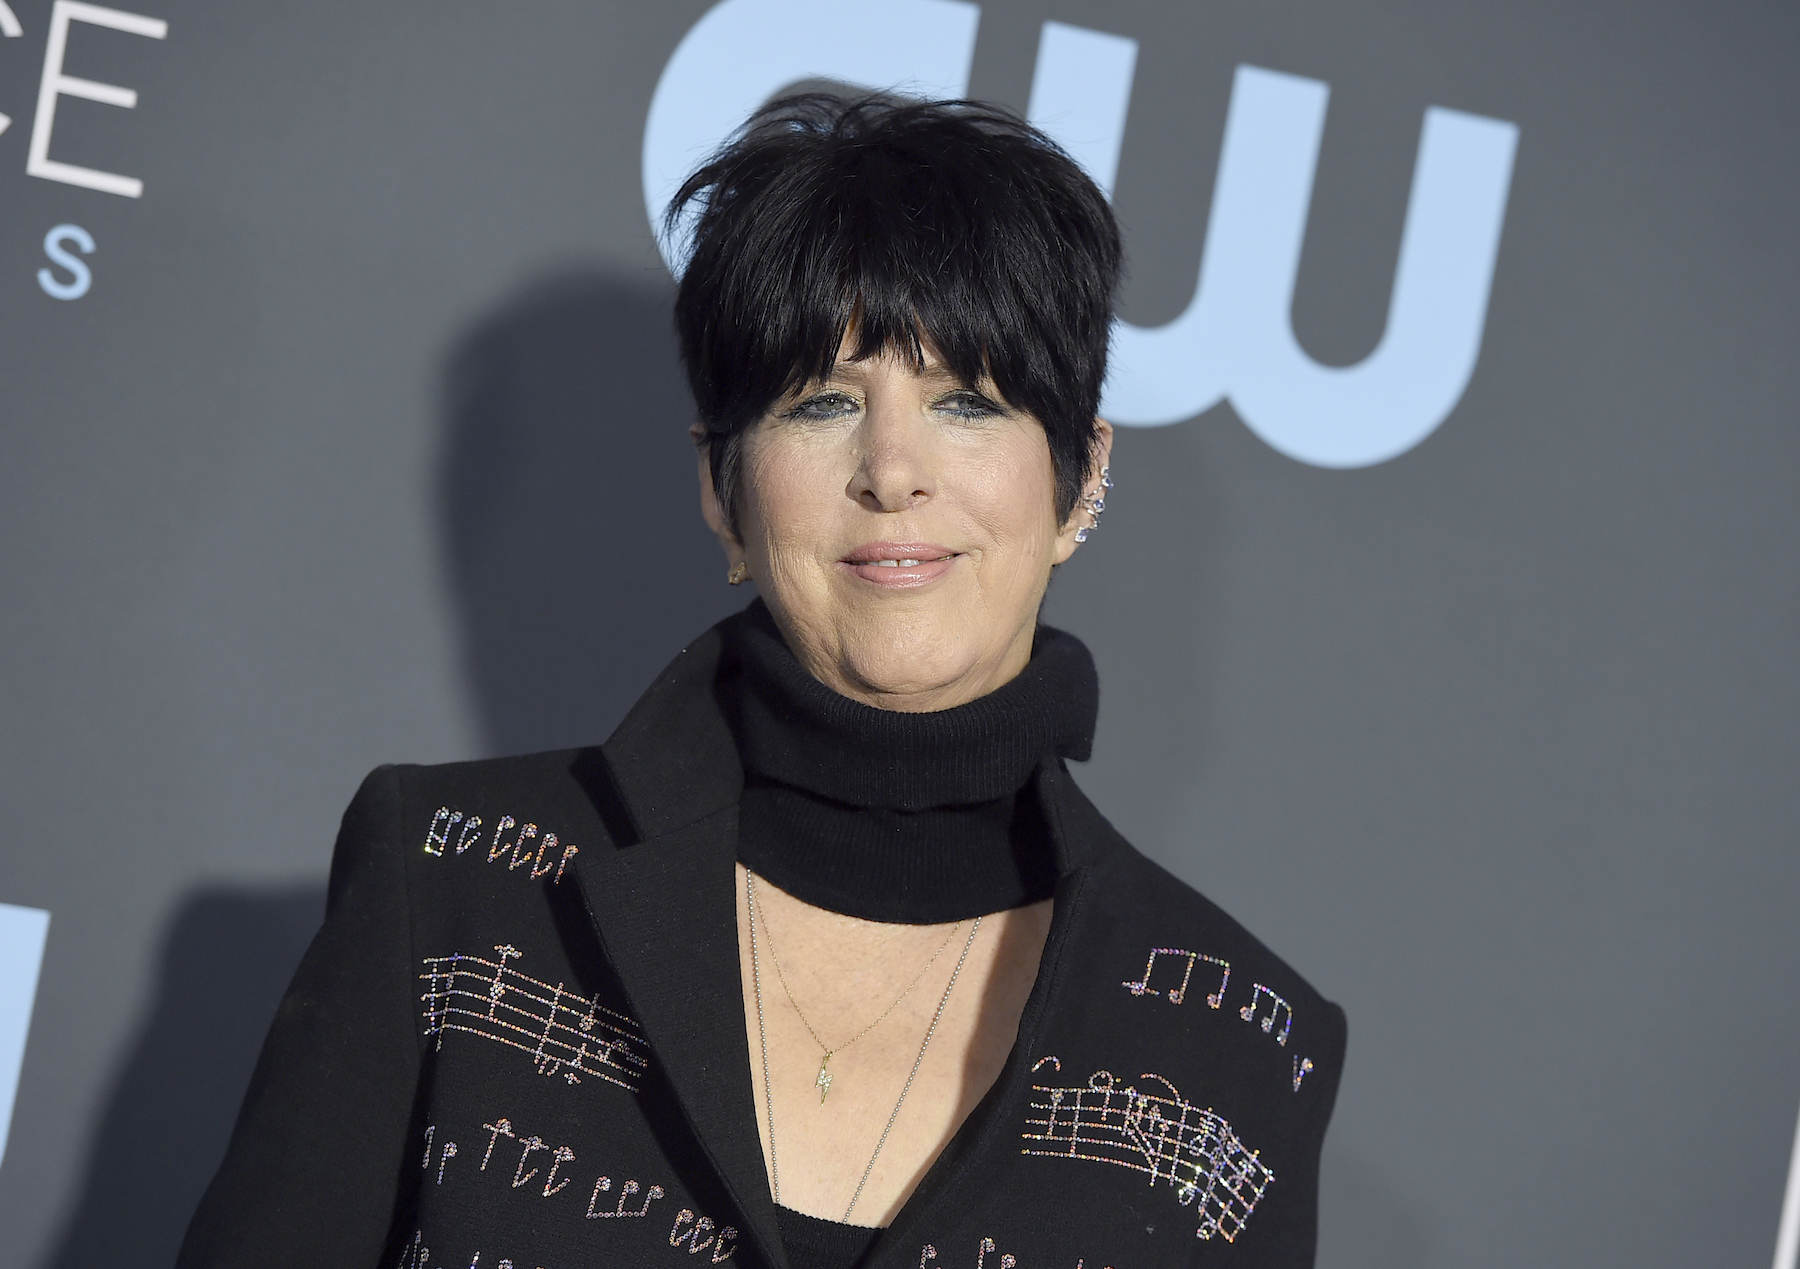 "<div class=""meta image-caption""><div class=""origin-logo origin-image ap""><span>AP</span></div><span class=""caption-text"">Diane Warren arrives at the 24th annual Critics' Choice Awards on Sunday, Jan. 13, 2019, at the Barker Hangar in Santa Monica, Calif. (Jordan Strauss/Invision/AP)</span></div>"